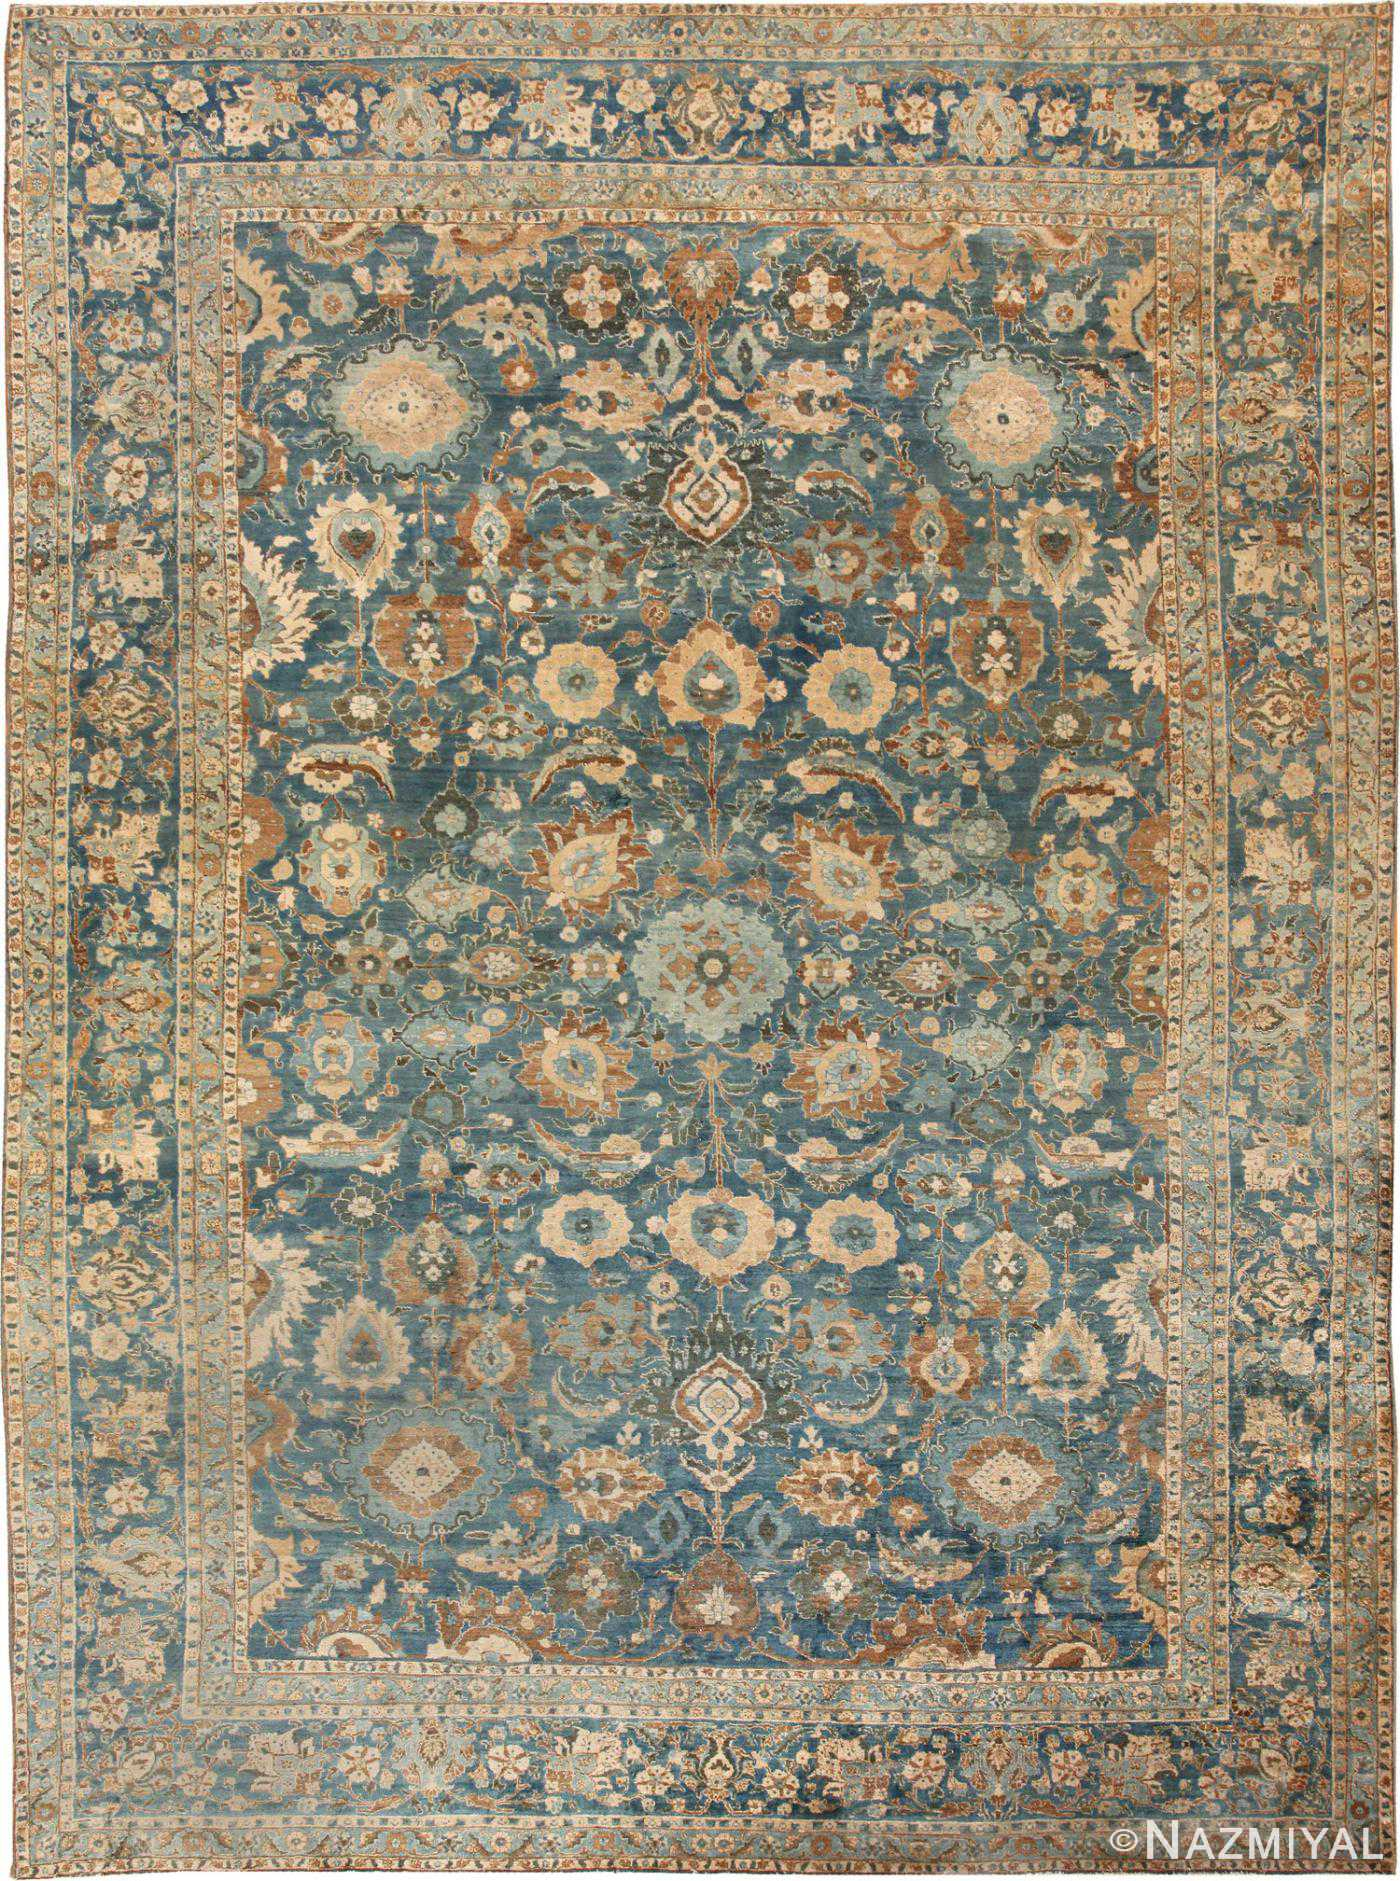 Antique Tabriz Persian Rug 46522 Detail/Large View